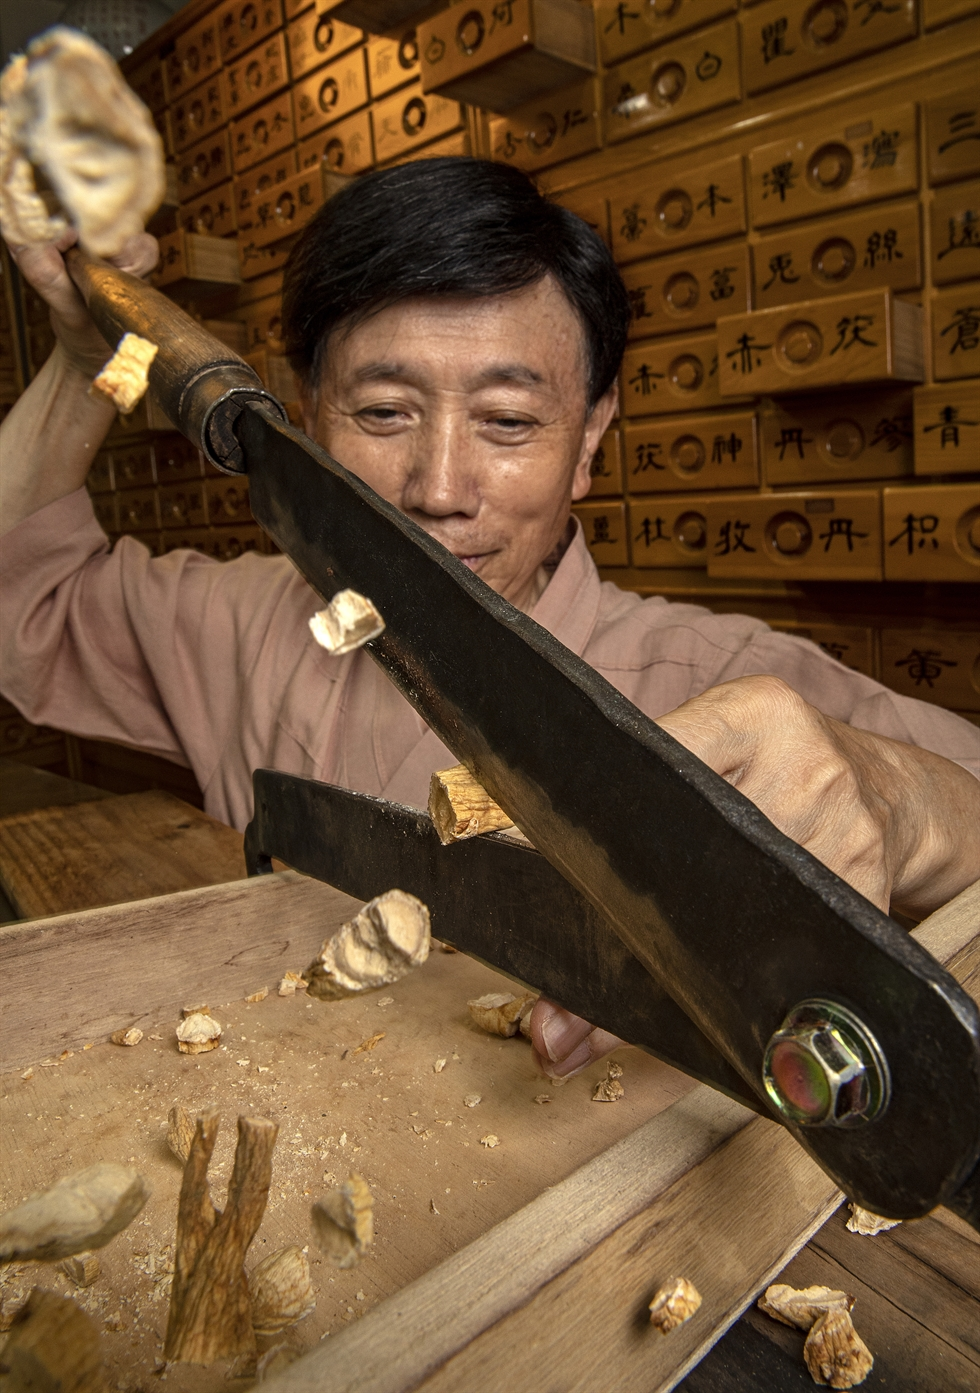 Ryu Hwang-rim, a traditional Korean herbalist, carefully measures and combines herbal ingredients for medicines in his shop, Hwangjungwon Traditional Korean Medicine, in Wonju, Gangwon Province, on Monday. Korea Times photo by Shim Hyun-chul